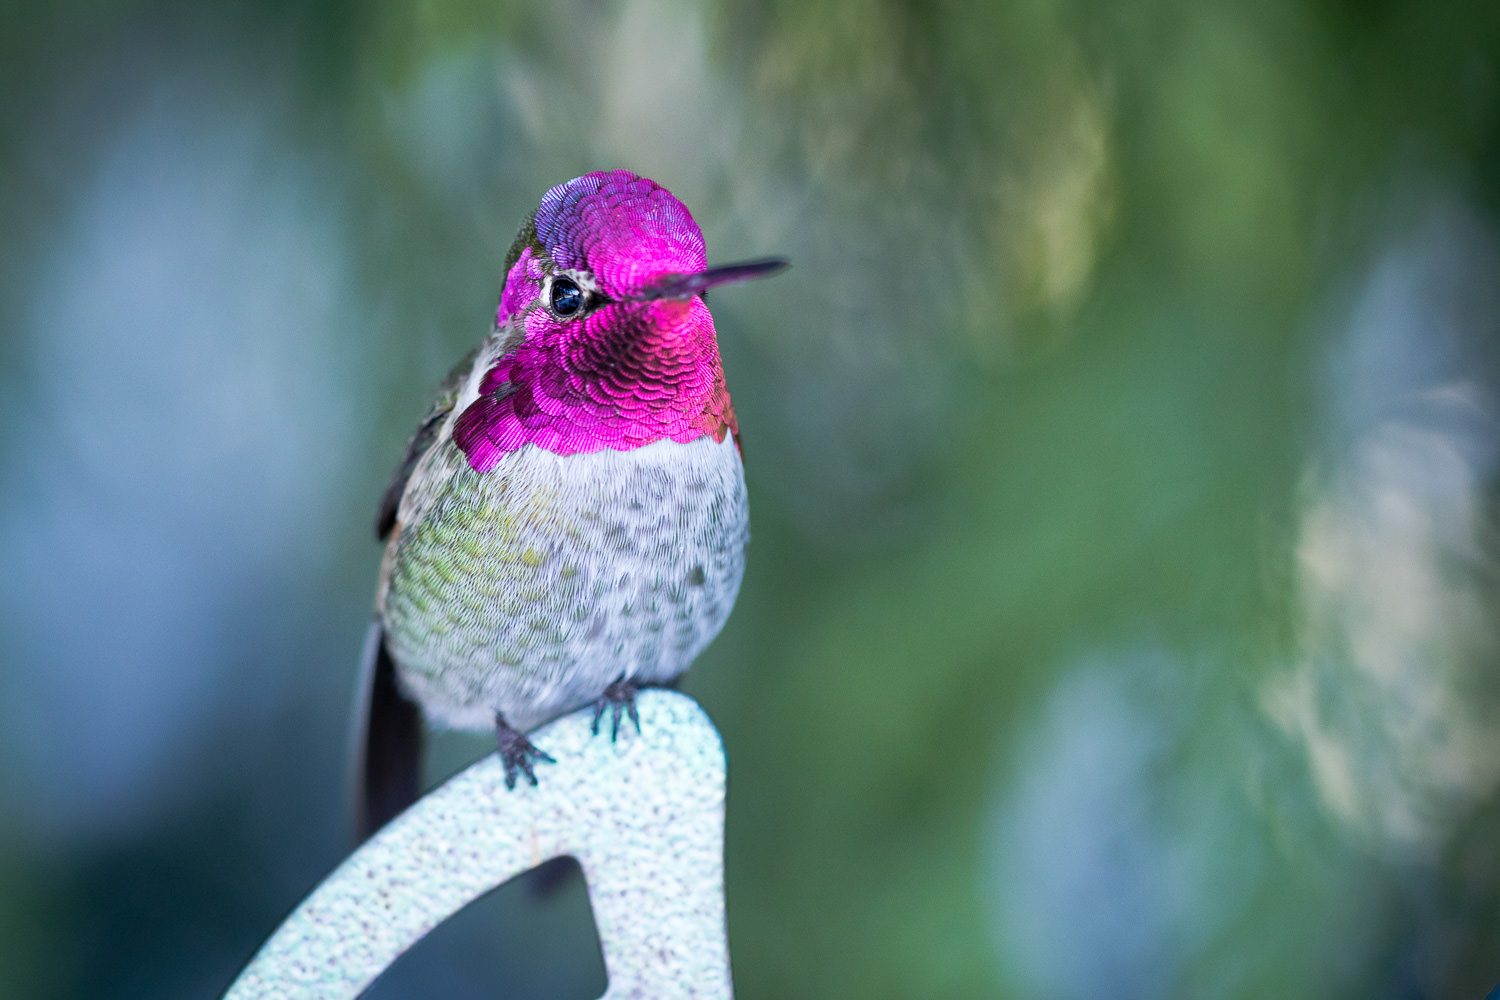 A second shot of the hummingbird on one of his favourite perches. His colours and cute little feet are just the best!